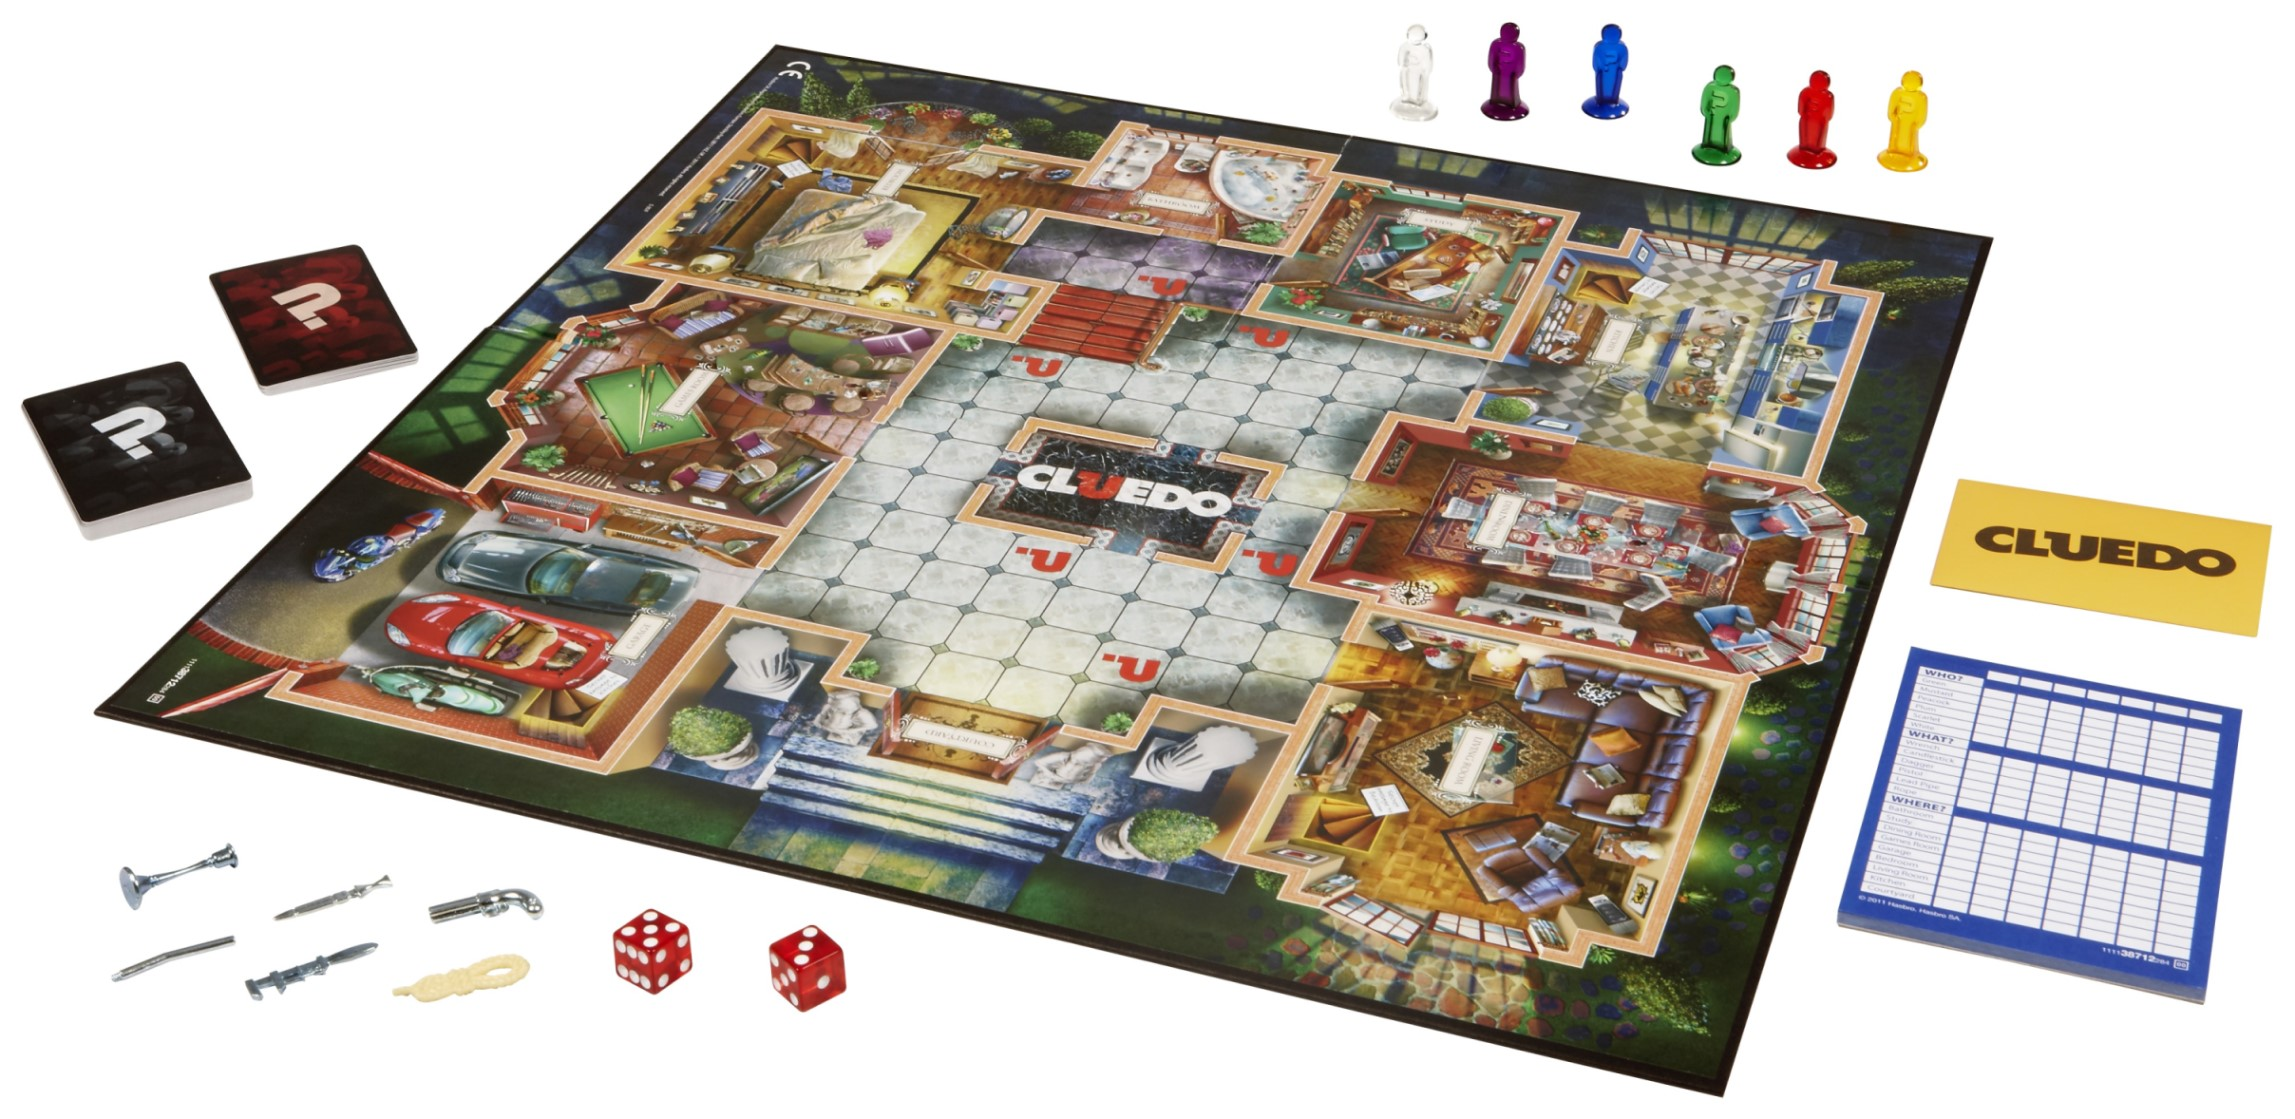 Cluedo board game